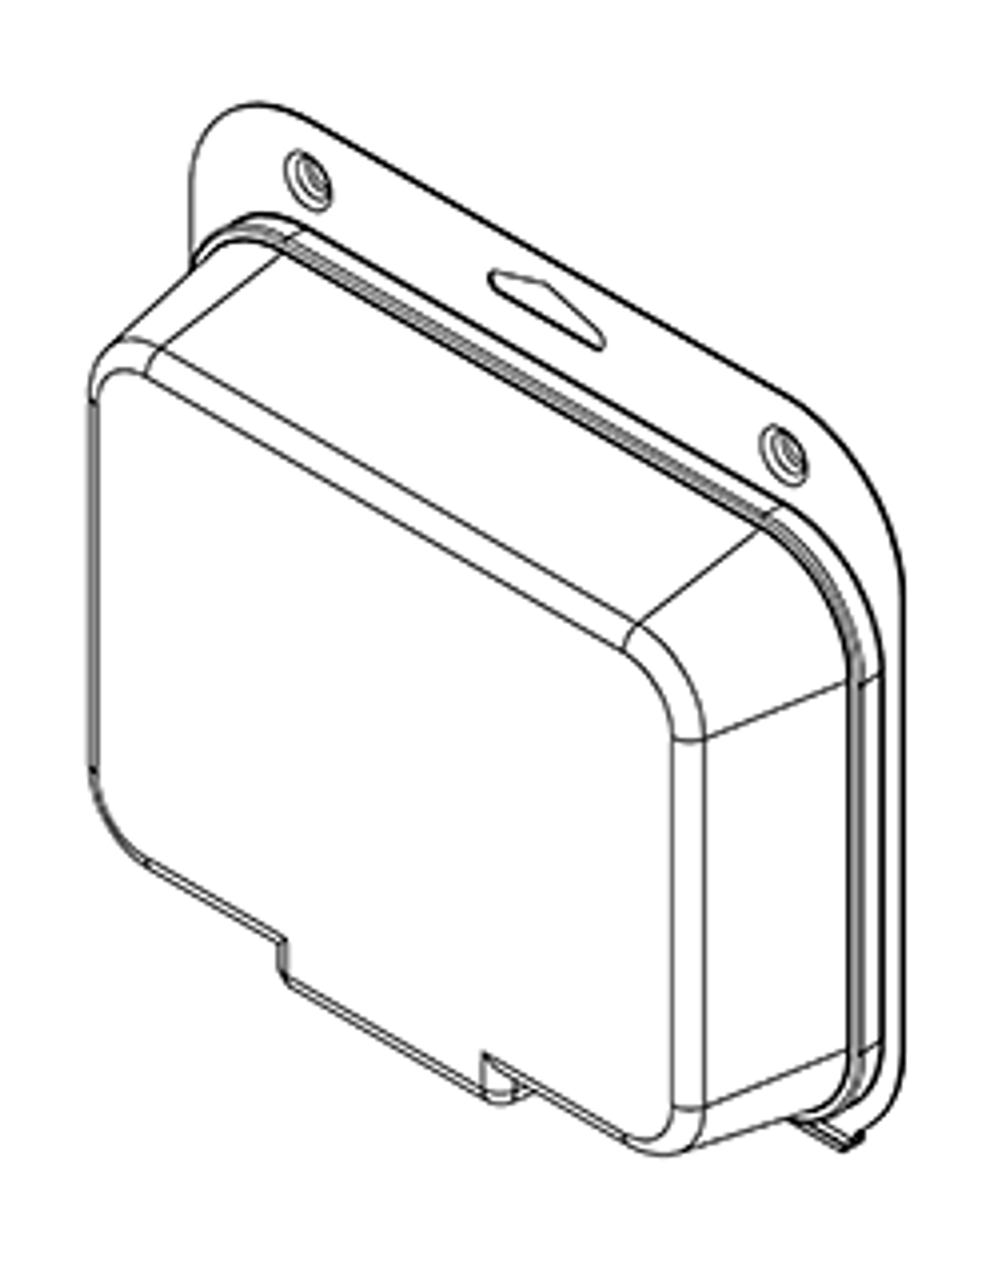 303TF - Stock Clamshell Packaging